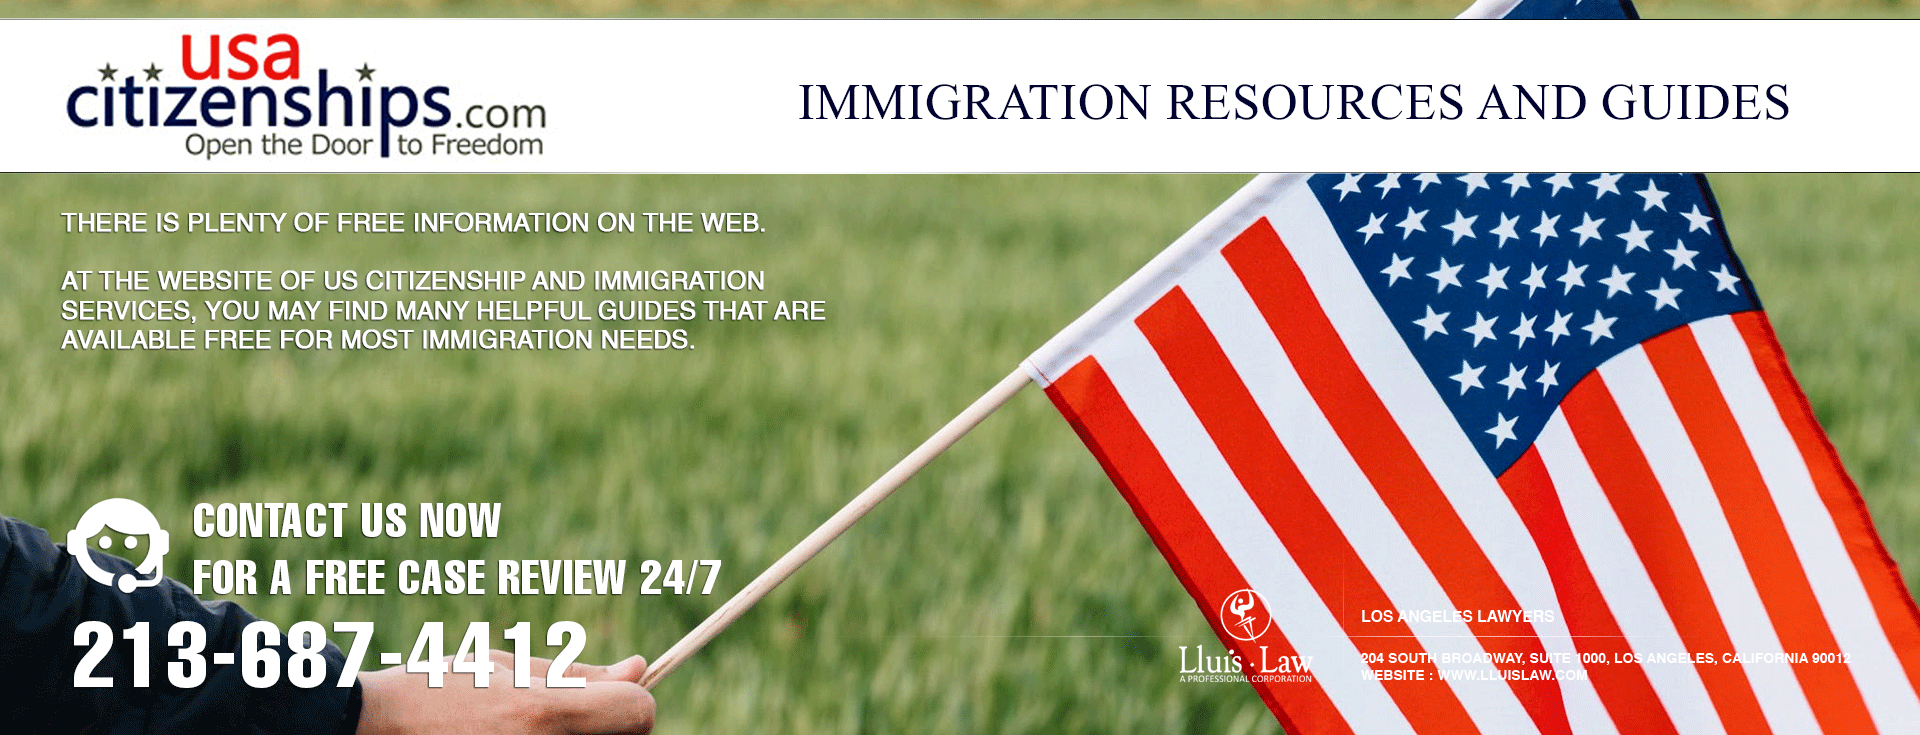 Immigration Resources and Guides